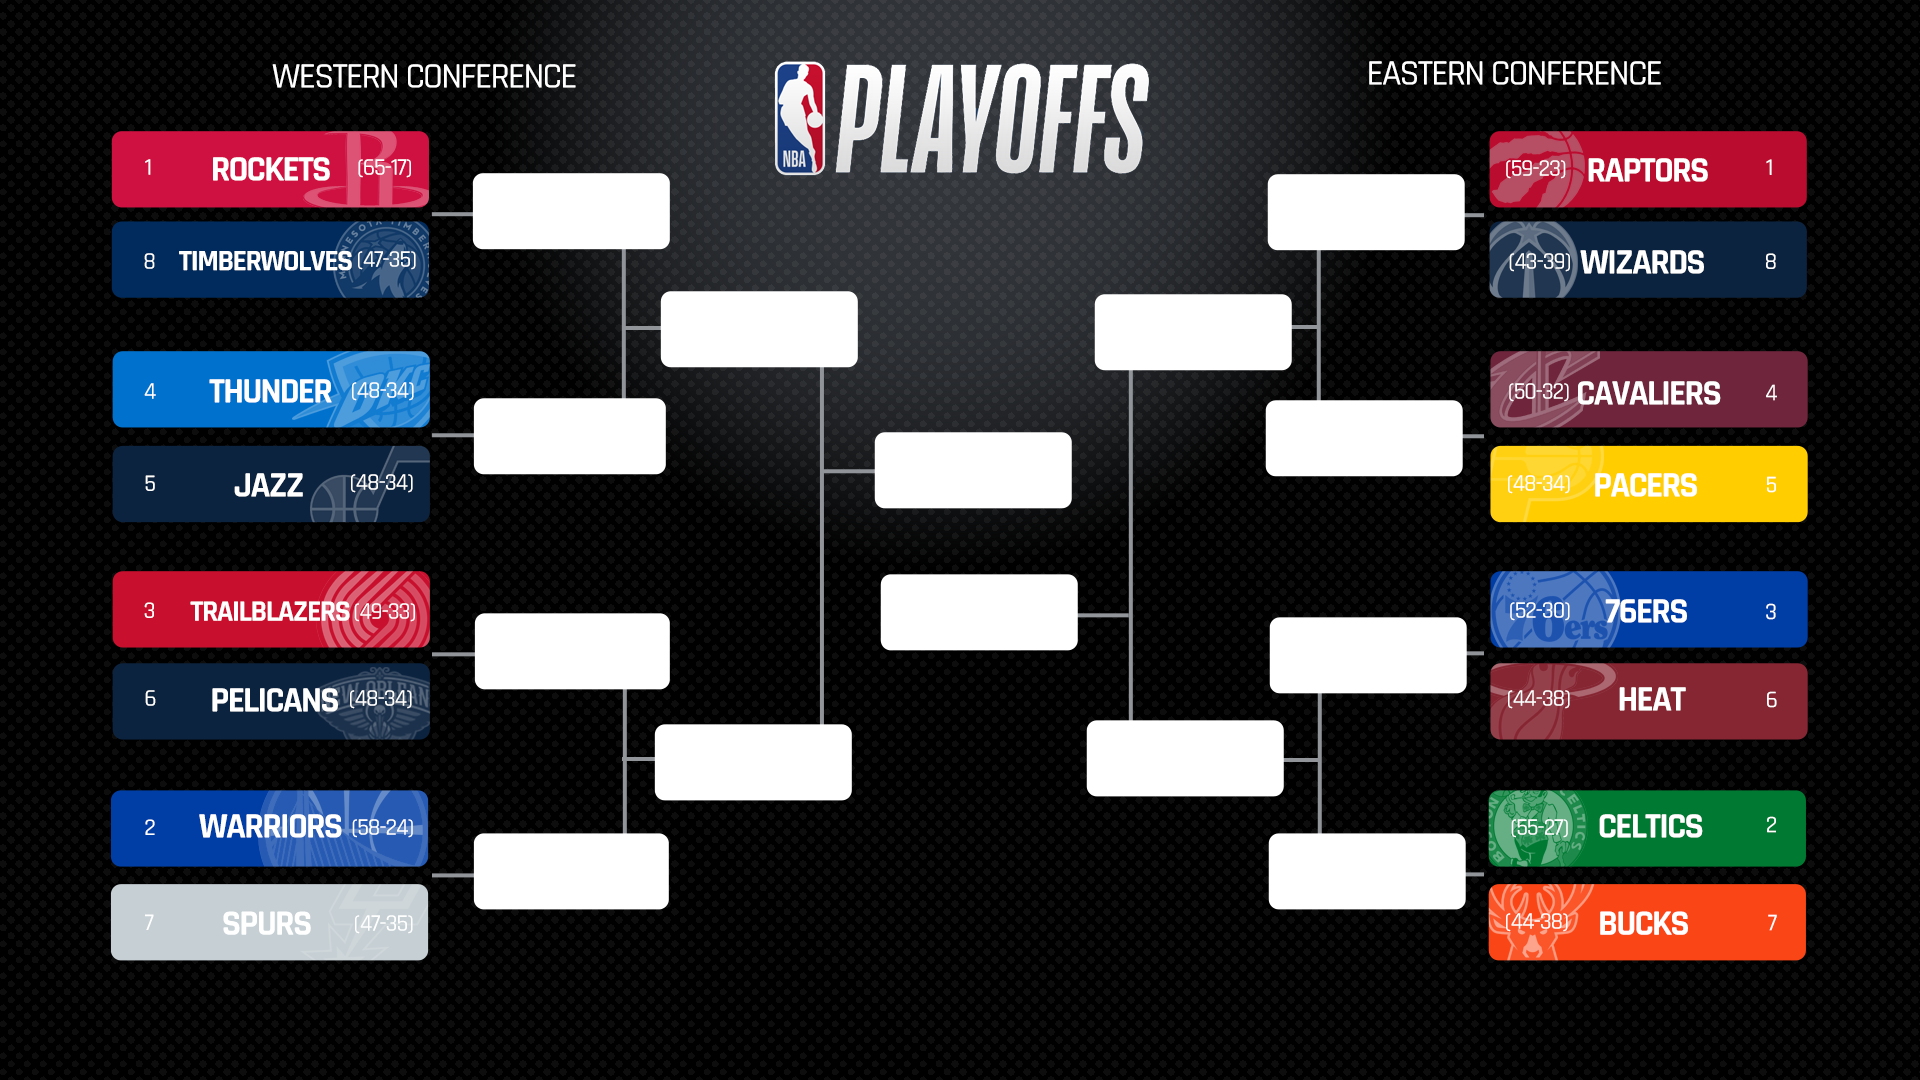 Nba Playoffs 2018 Full Bracket Predictions Picks From First Round To Nba Finals Sporting News